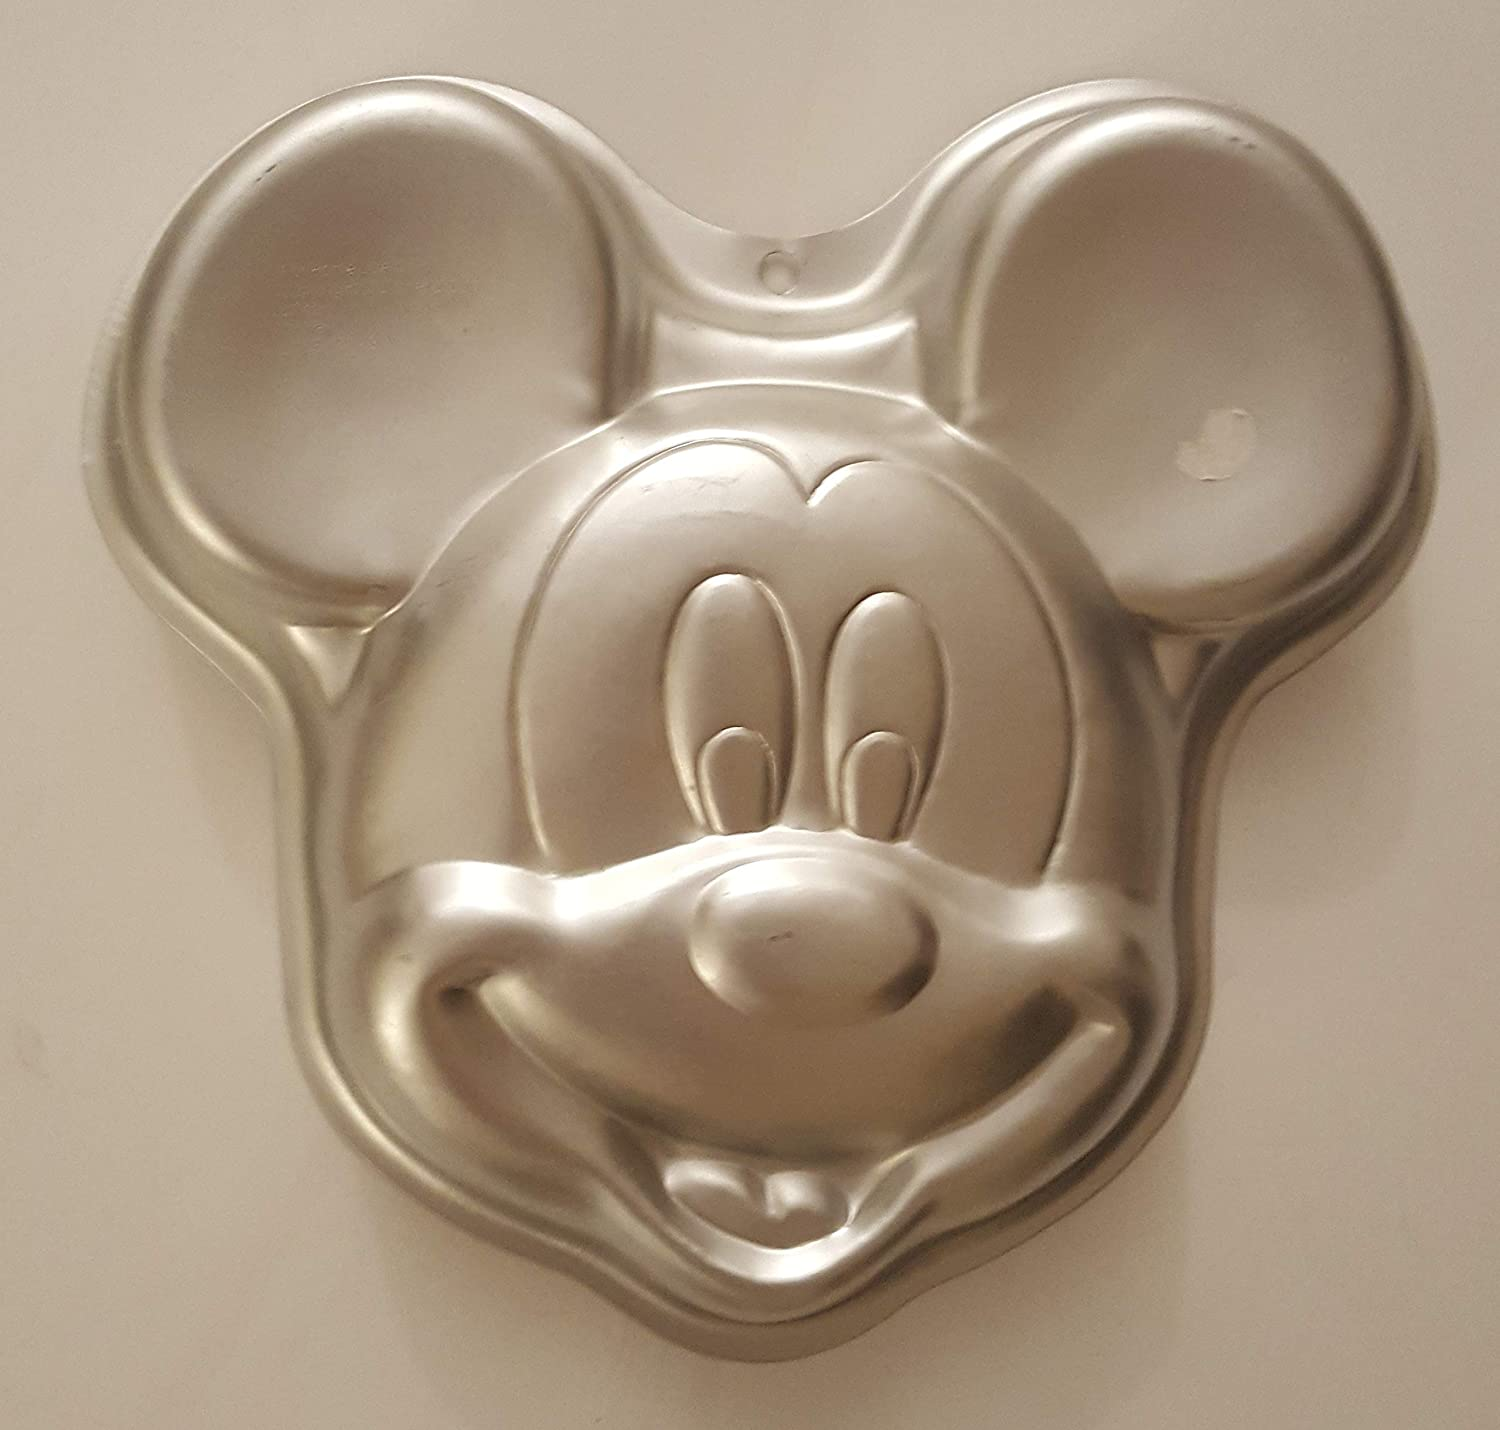 Peachy Amazon Com Wilton Mickey Mouse Face Cake Pan Kitchen Dining Funny Birthday Cards Online Barepcheapnameinfo